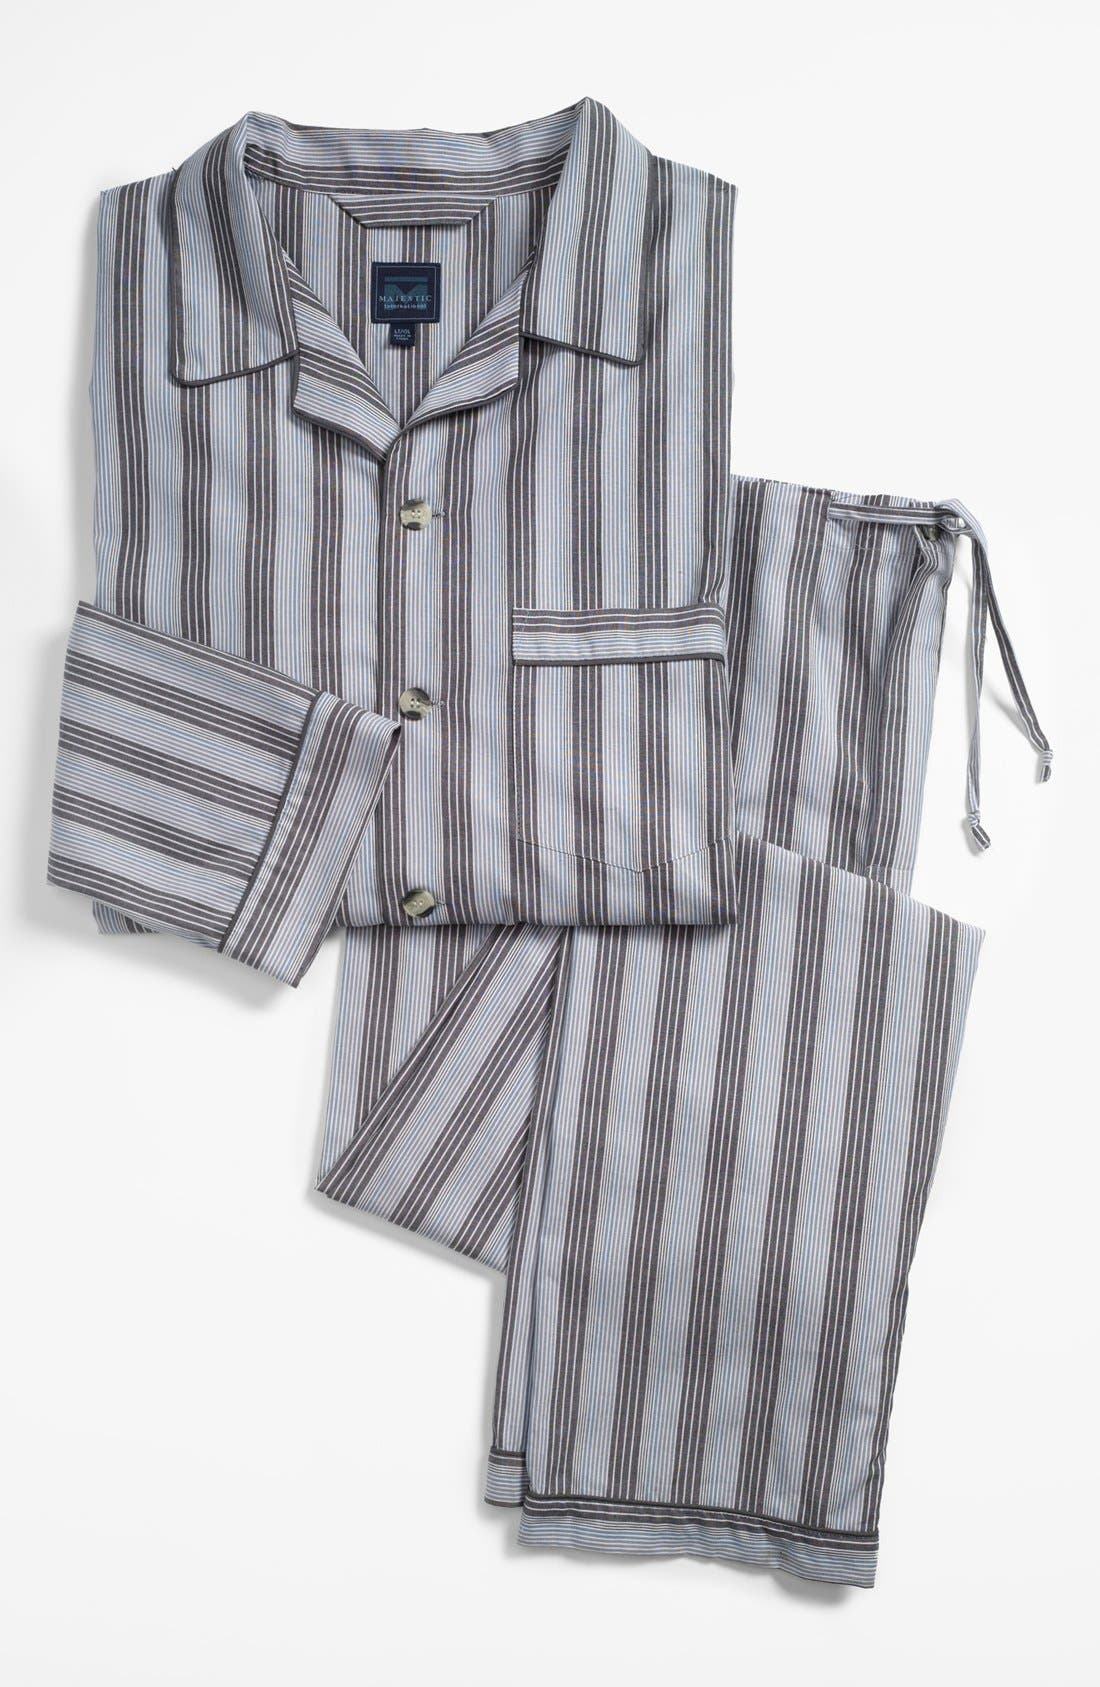 Main Image - Majestic International 'Westin' Pajamas (Big & Tall)